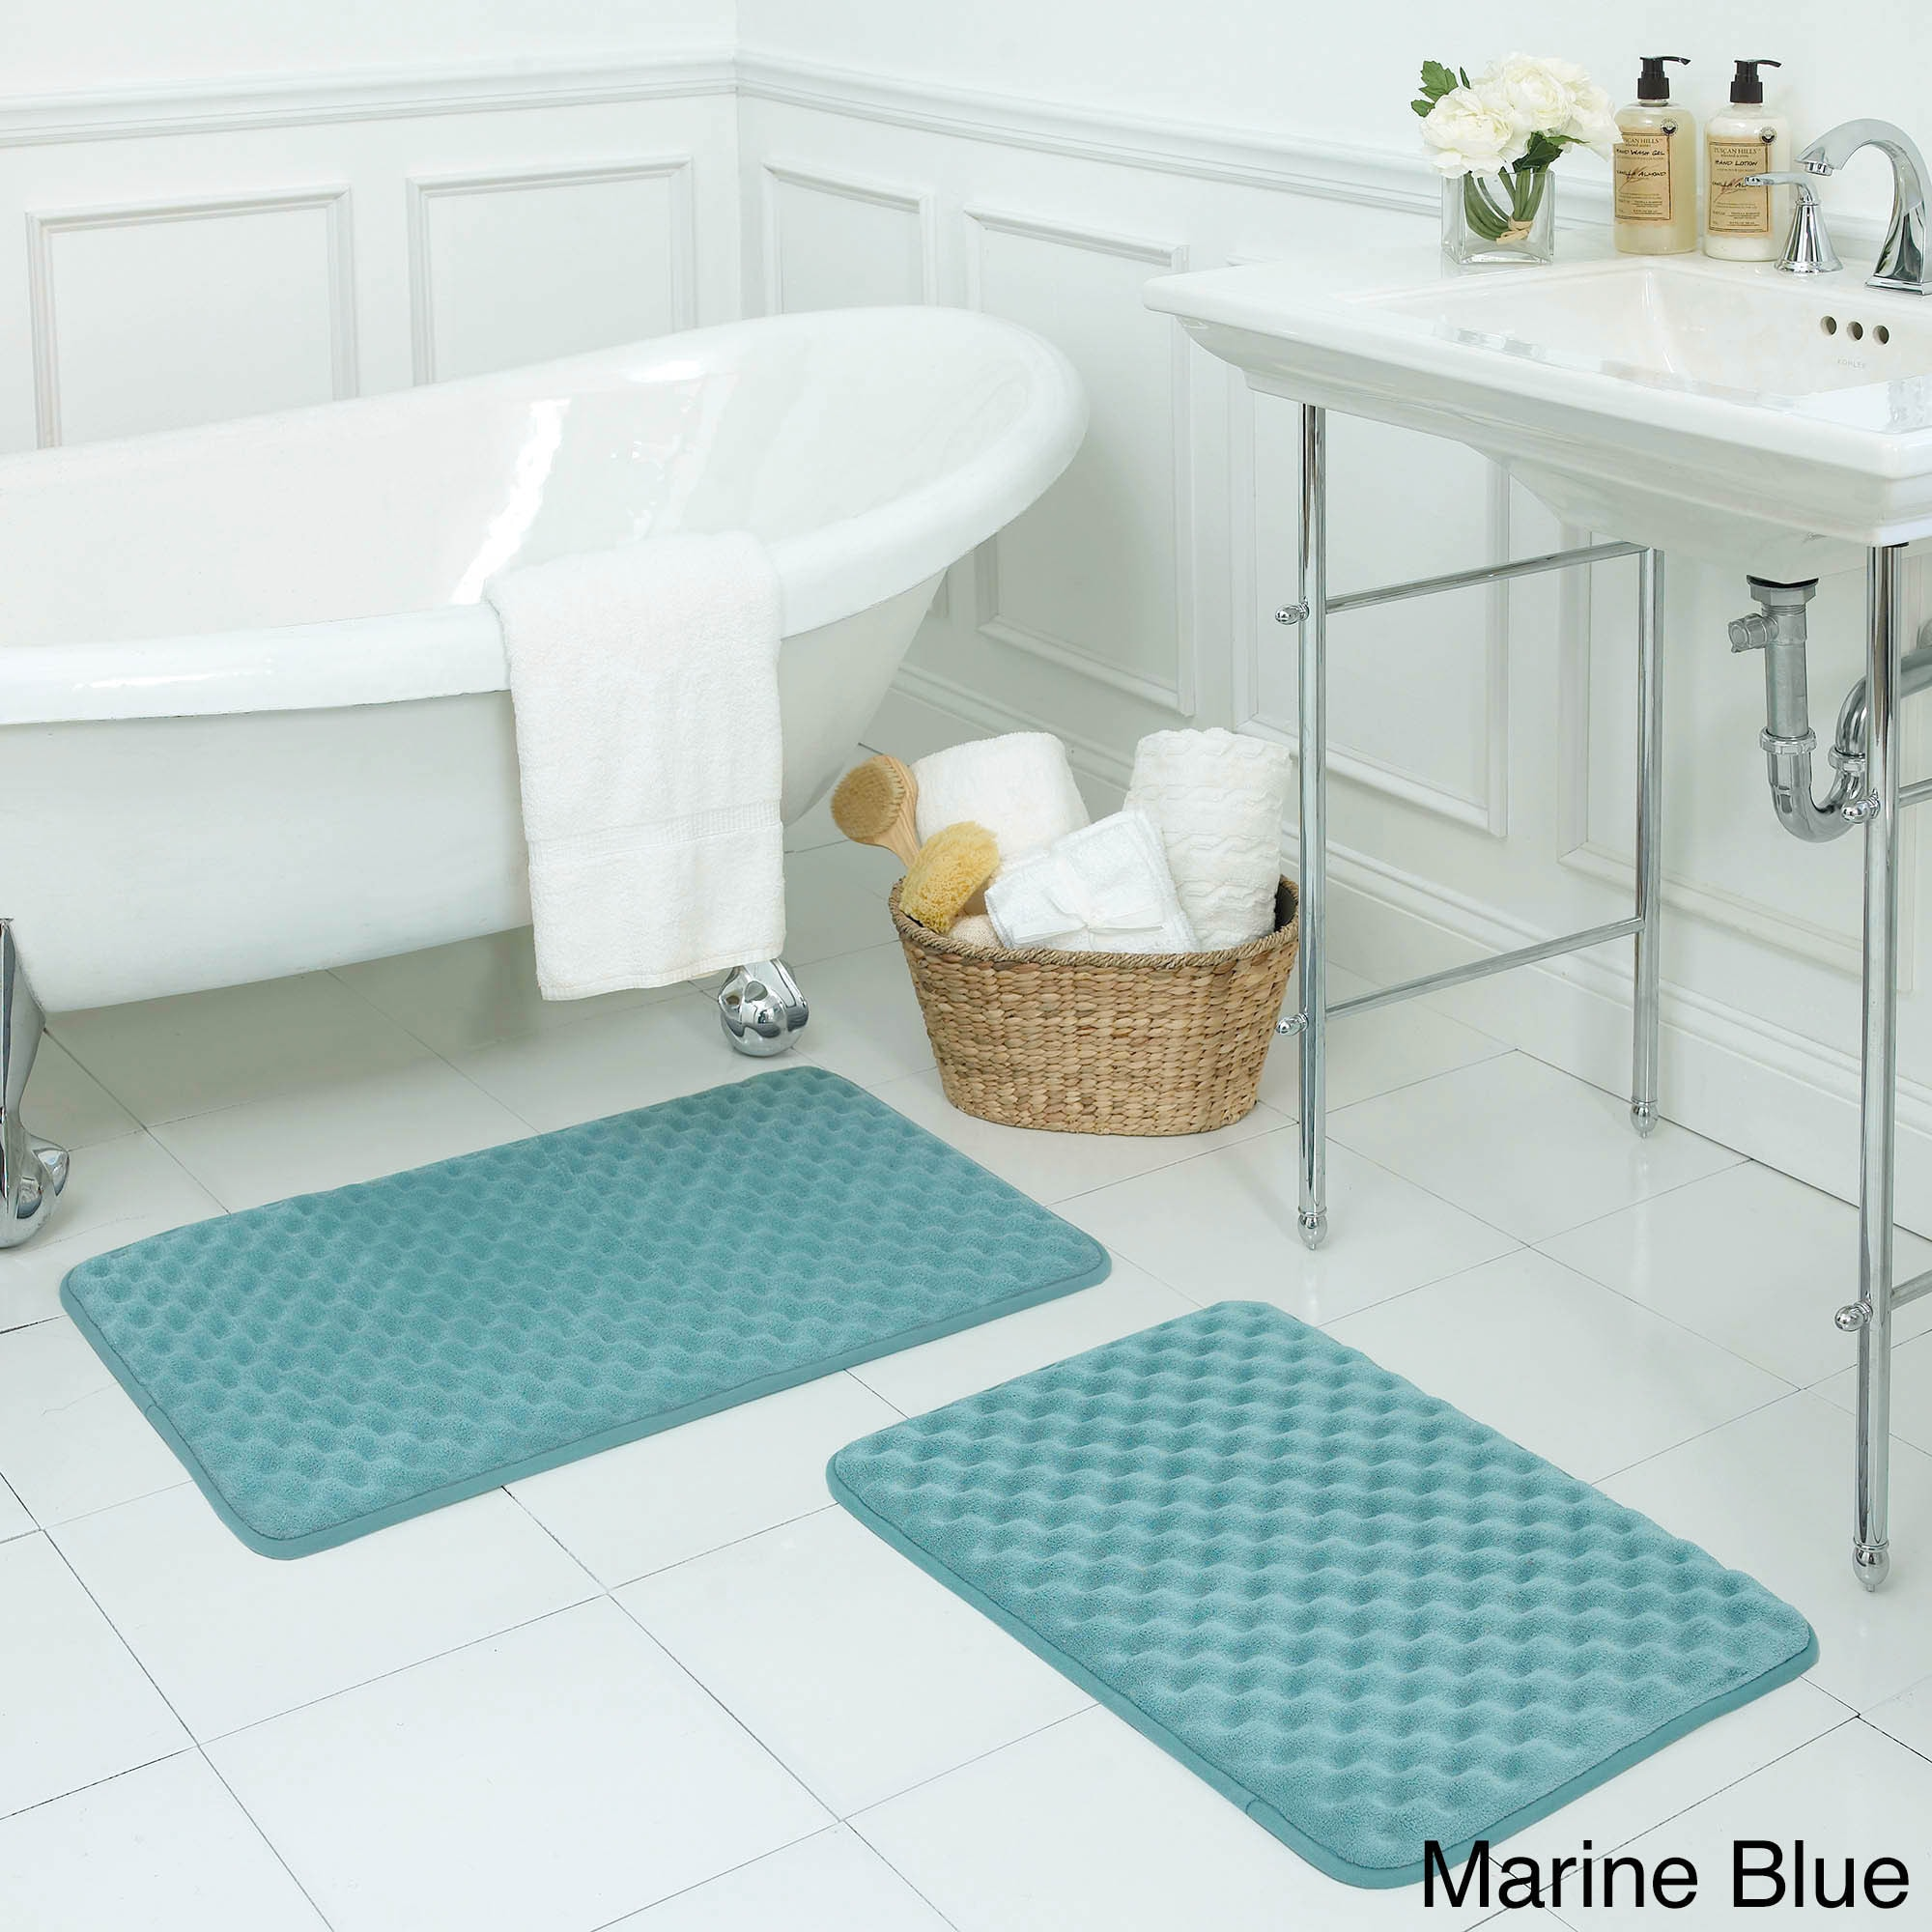 2 Piece Shaggy Chenille Bath Mat Set-Teal Blue-Brand New in Package